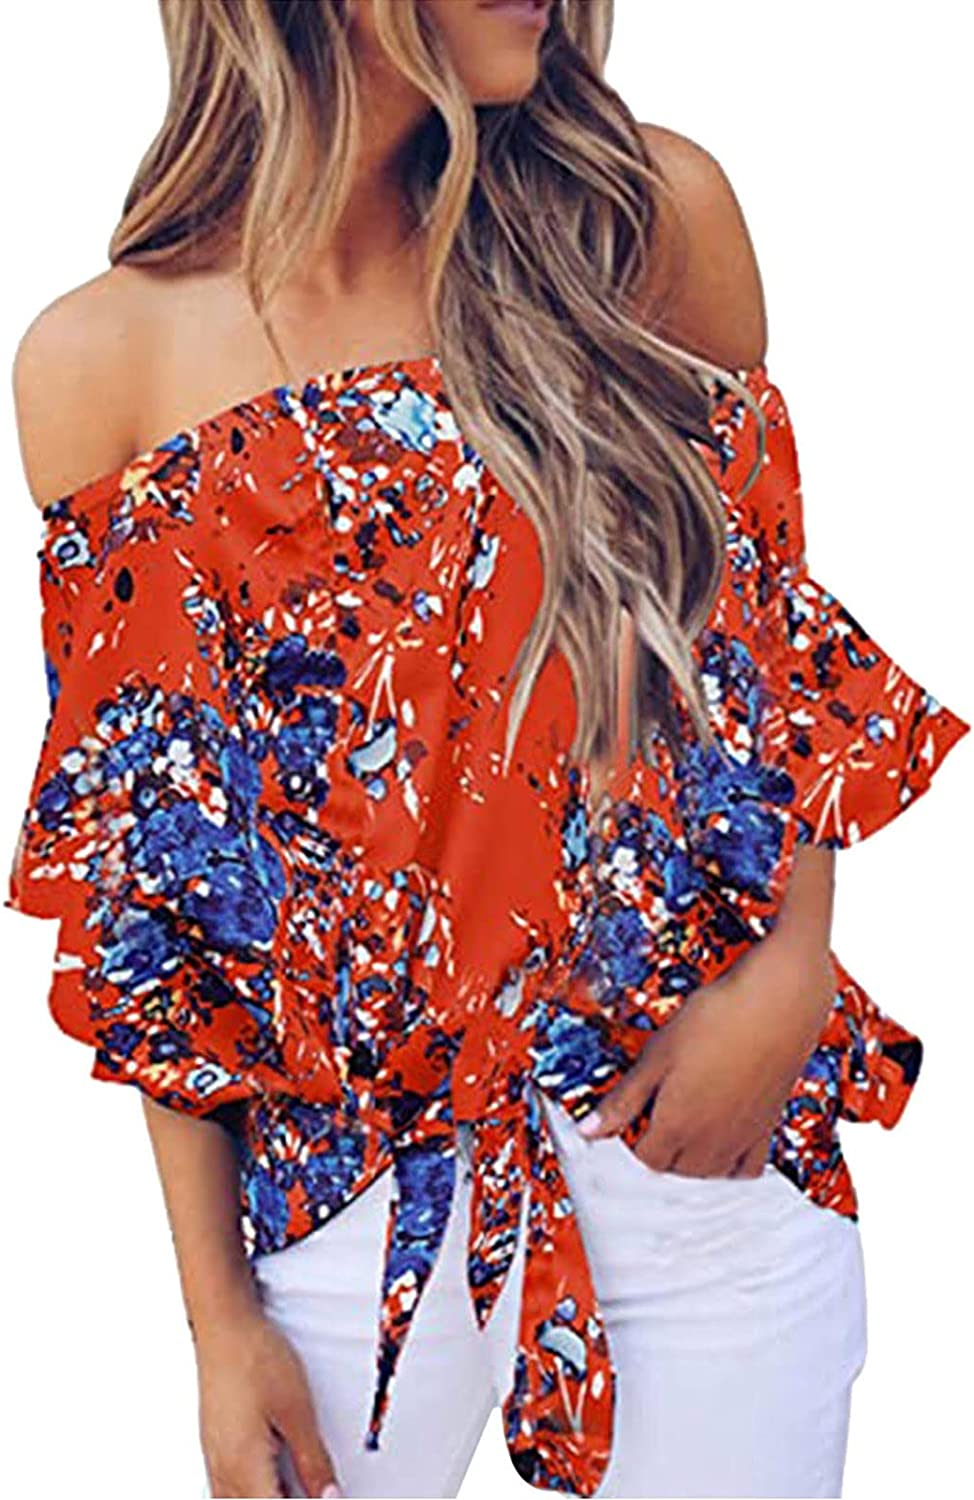 Womens Summer Printed Off The Shoulder Tops Casual Flared Bell Sleeve Tie Knot T Shirts Blouses